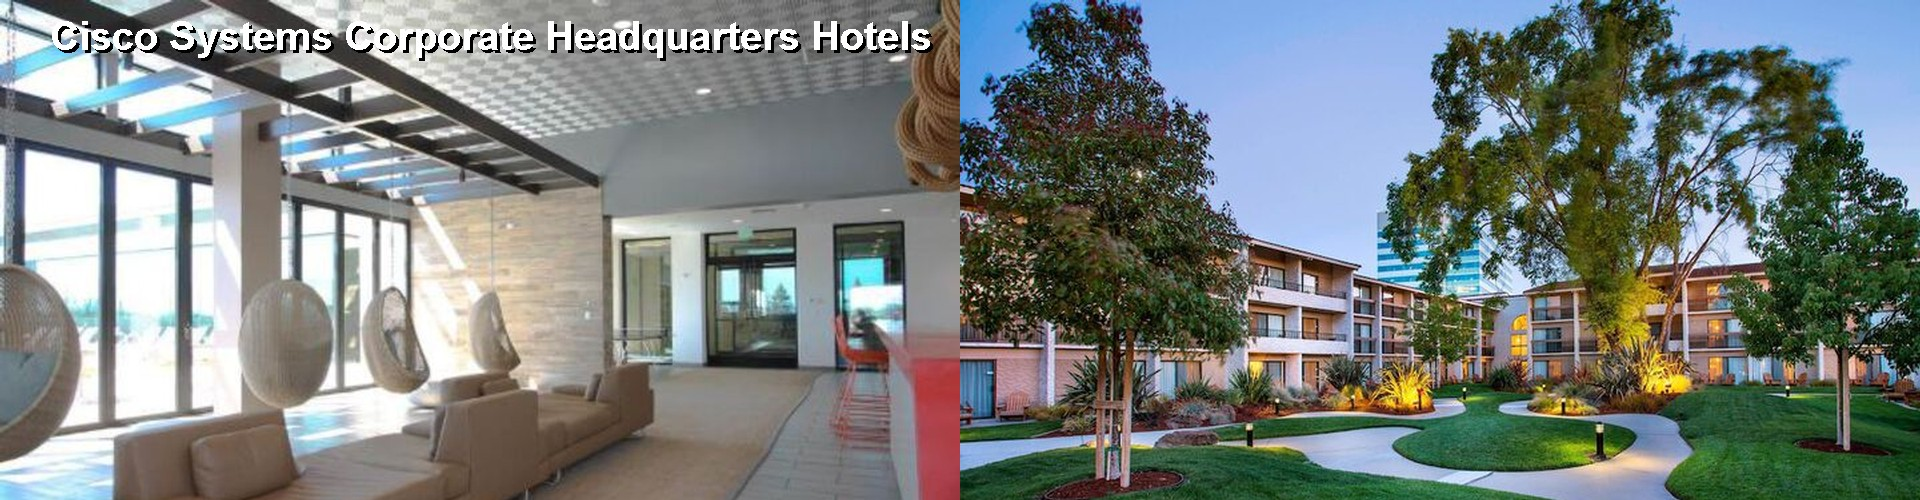 4 Best Hotels near Cisco Systems Corporate Headquarters